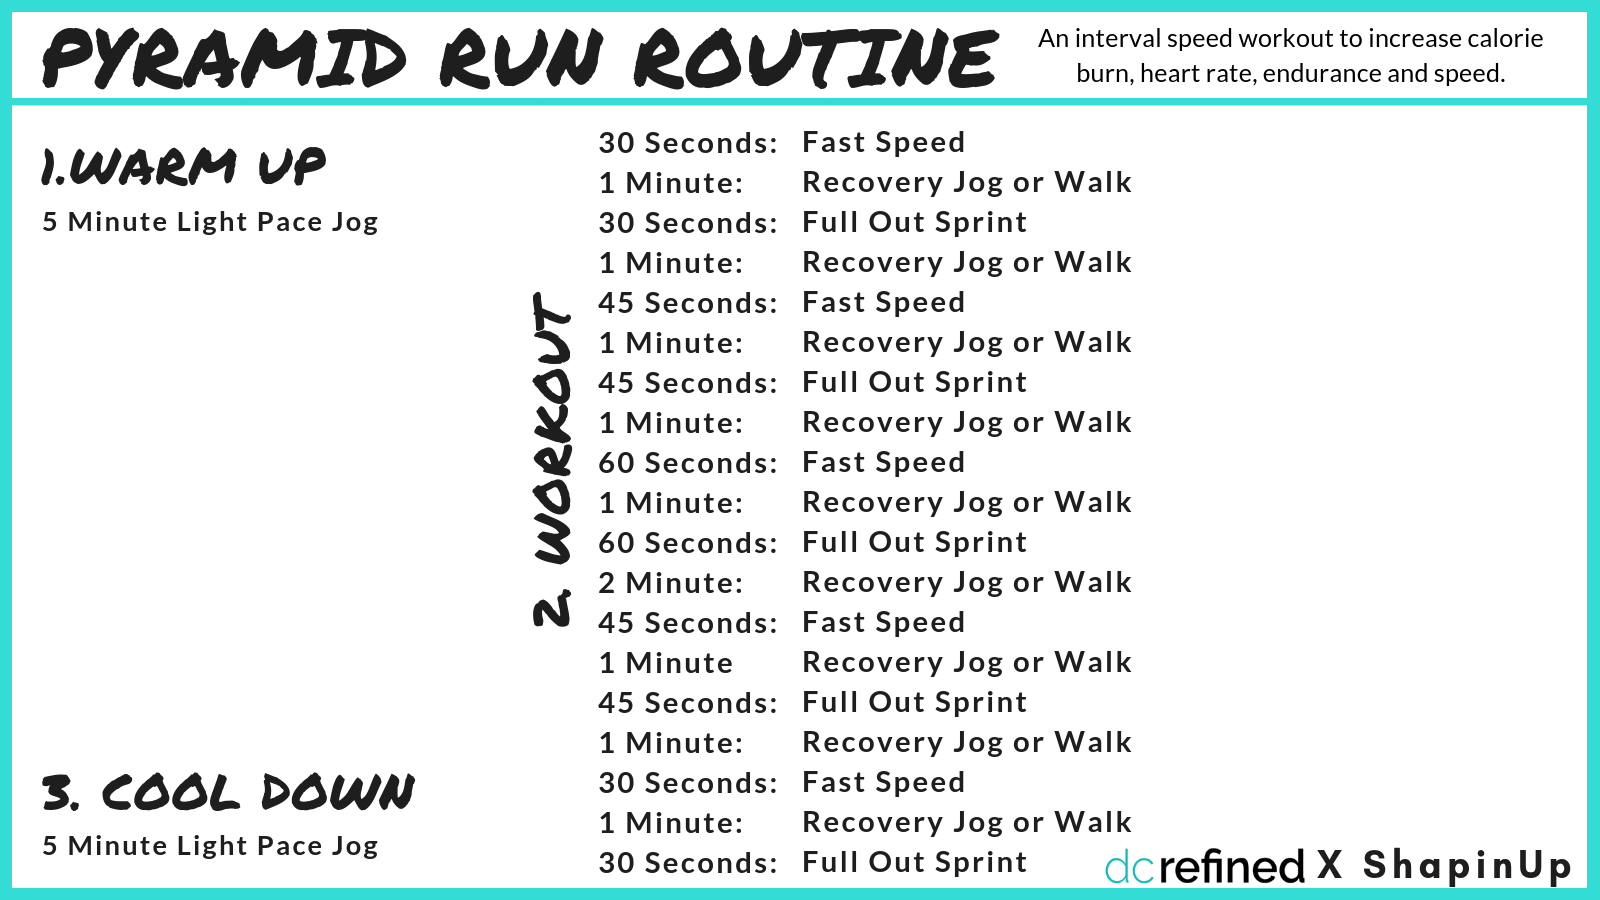 Try this outdoor run routine to improve your endurance and speed. (Graphic: Amanda Shapin)